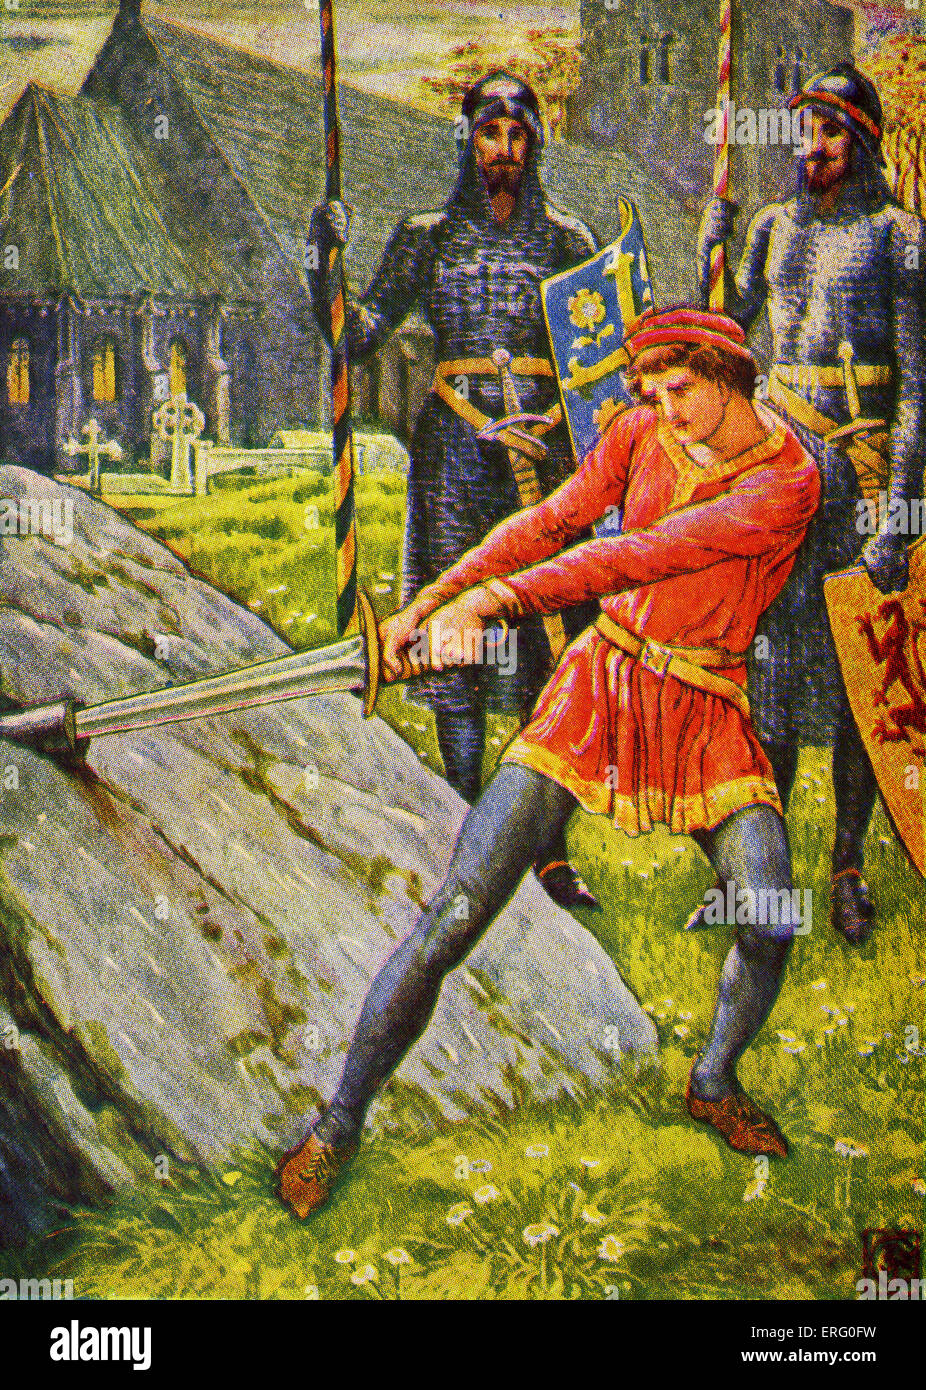 the legend of king arthur book stock photo royalty free image